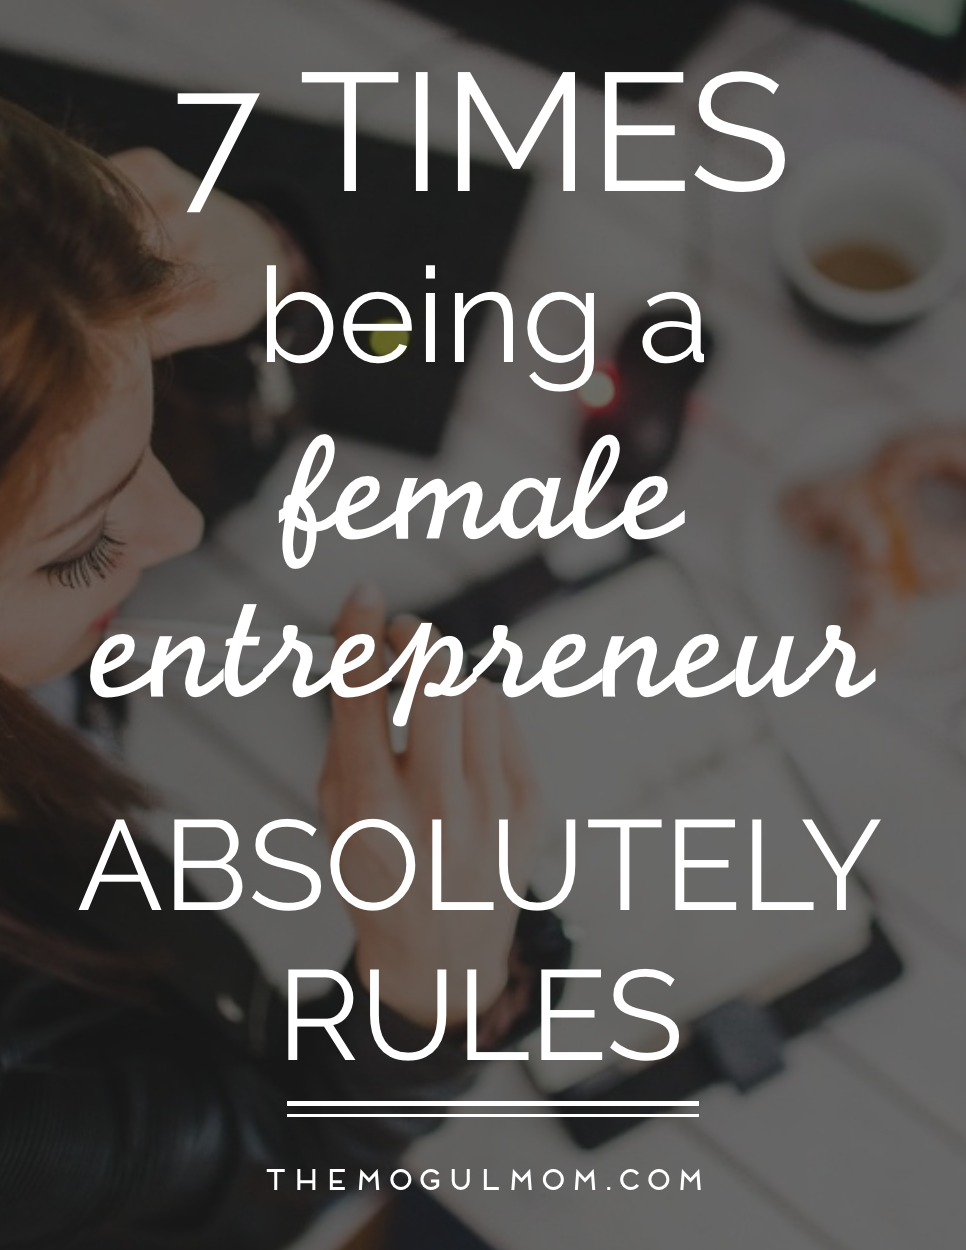 7 Times Being a Woman Entrepreneur Absolutely Rules